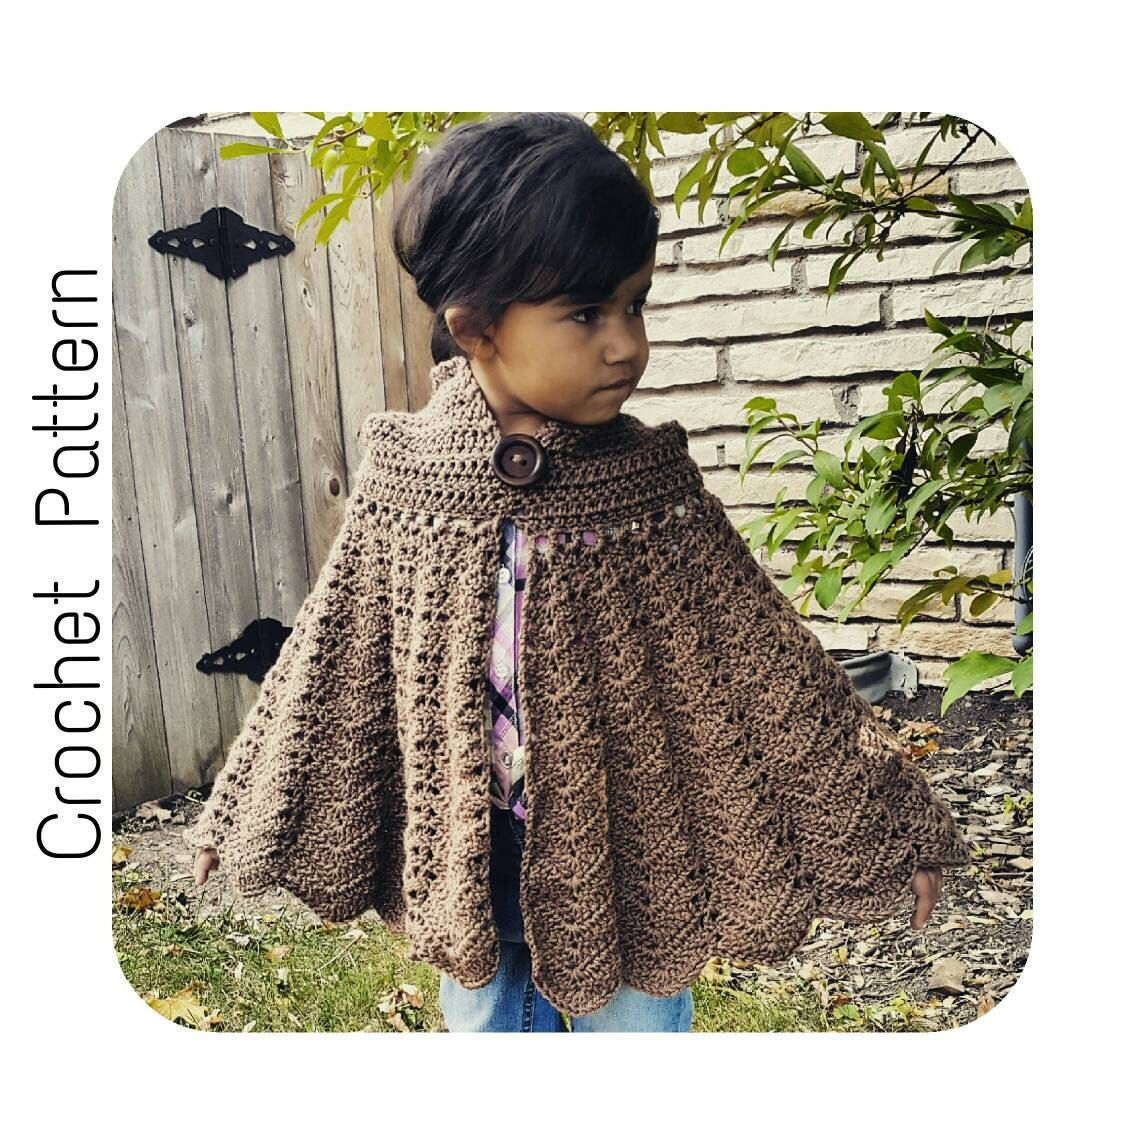 Image result for poncho crochet with hood shawls n shrugs image result for poncho crochet with hood bankloansurffo Choice Image